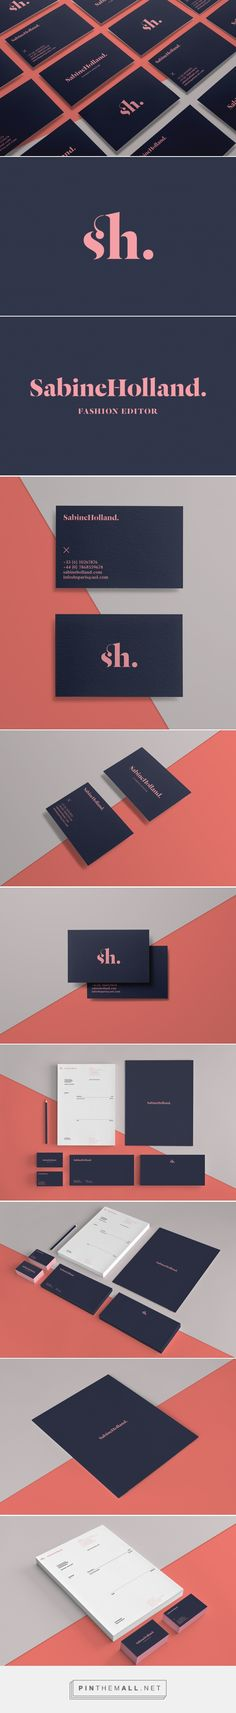 Sabine Holland: Fashion Editor Branding on Behance - created via http://pinthemall.net